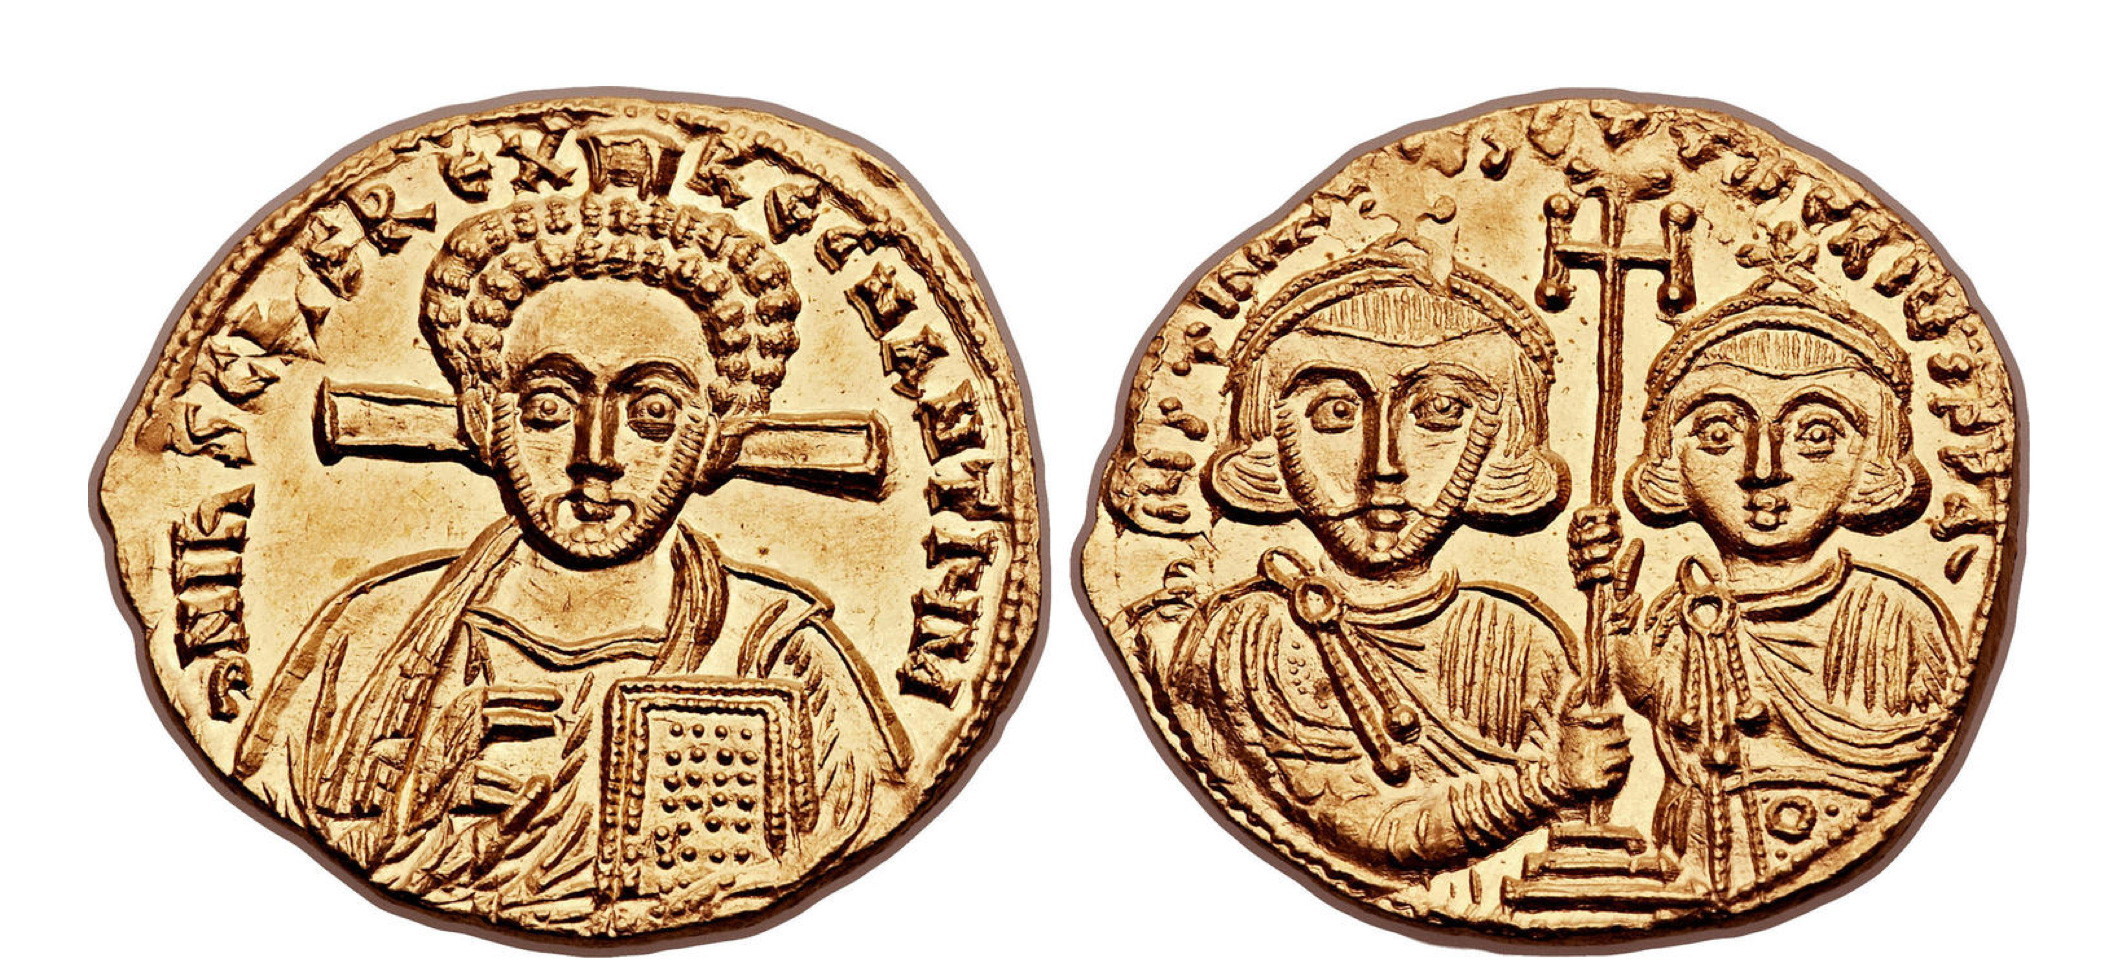 Justinian II, second reign (AD 705-711), with Tiberius. AV solidus.